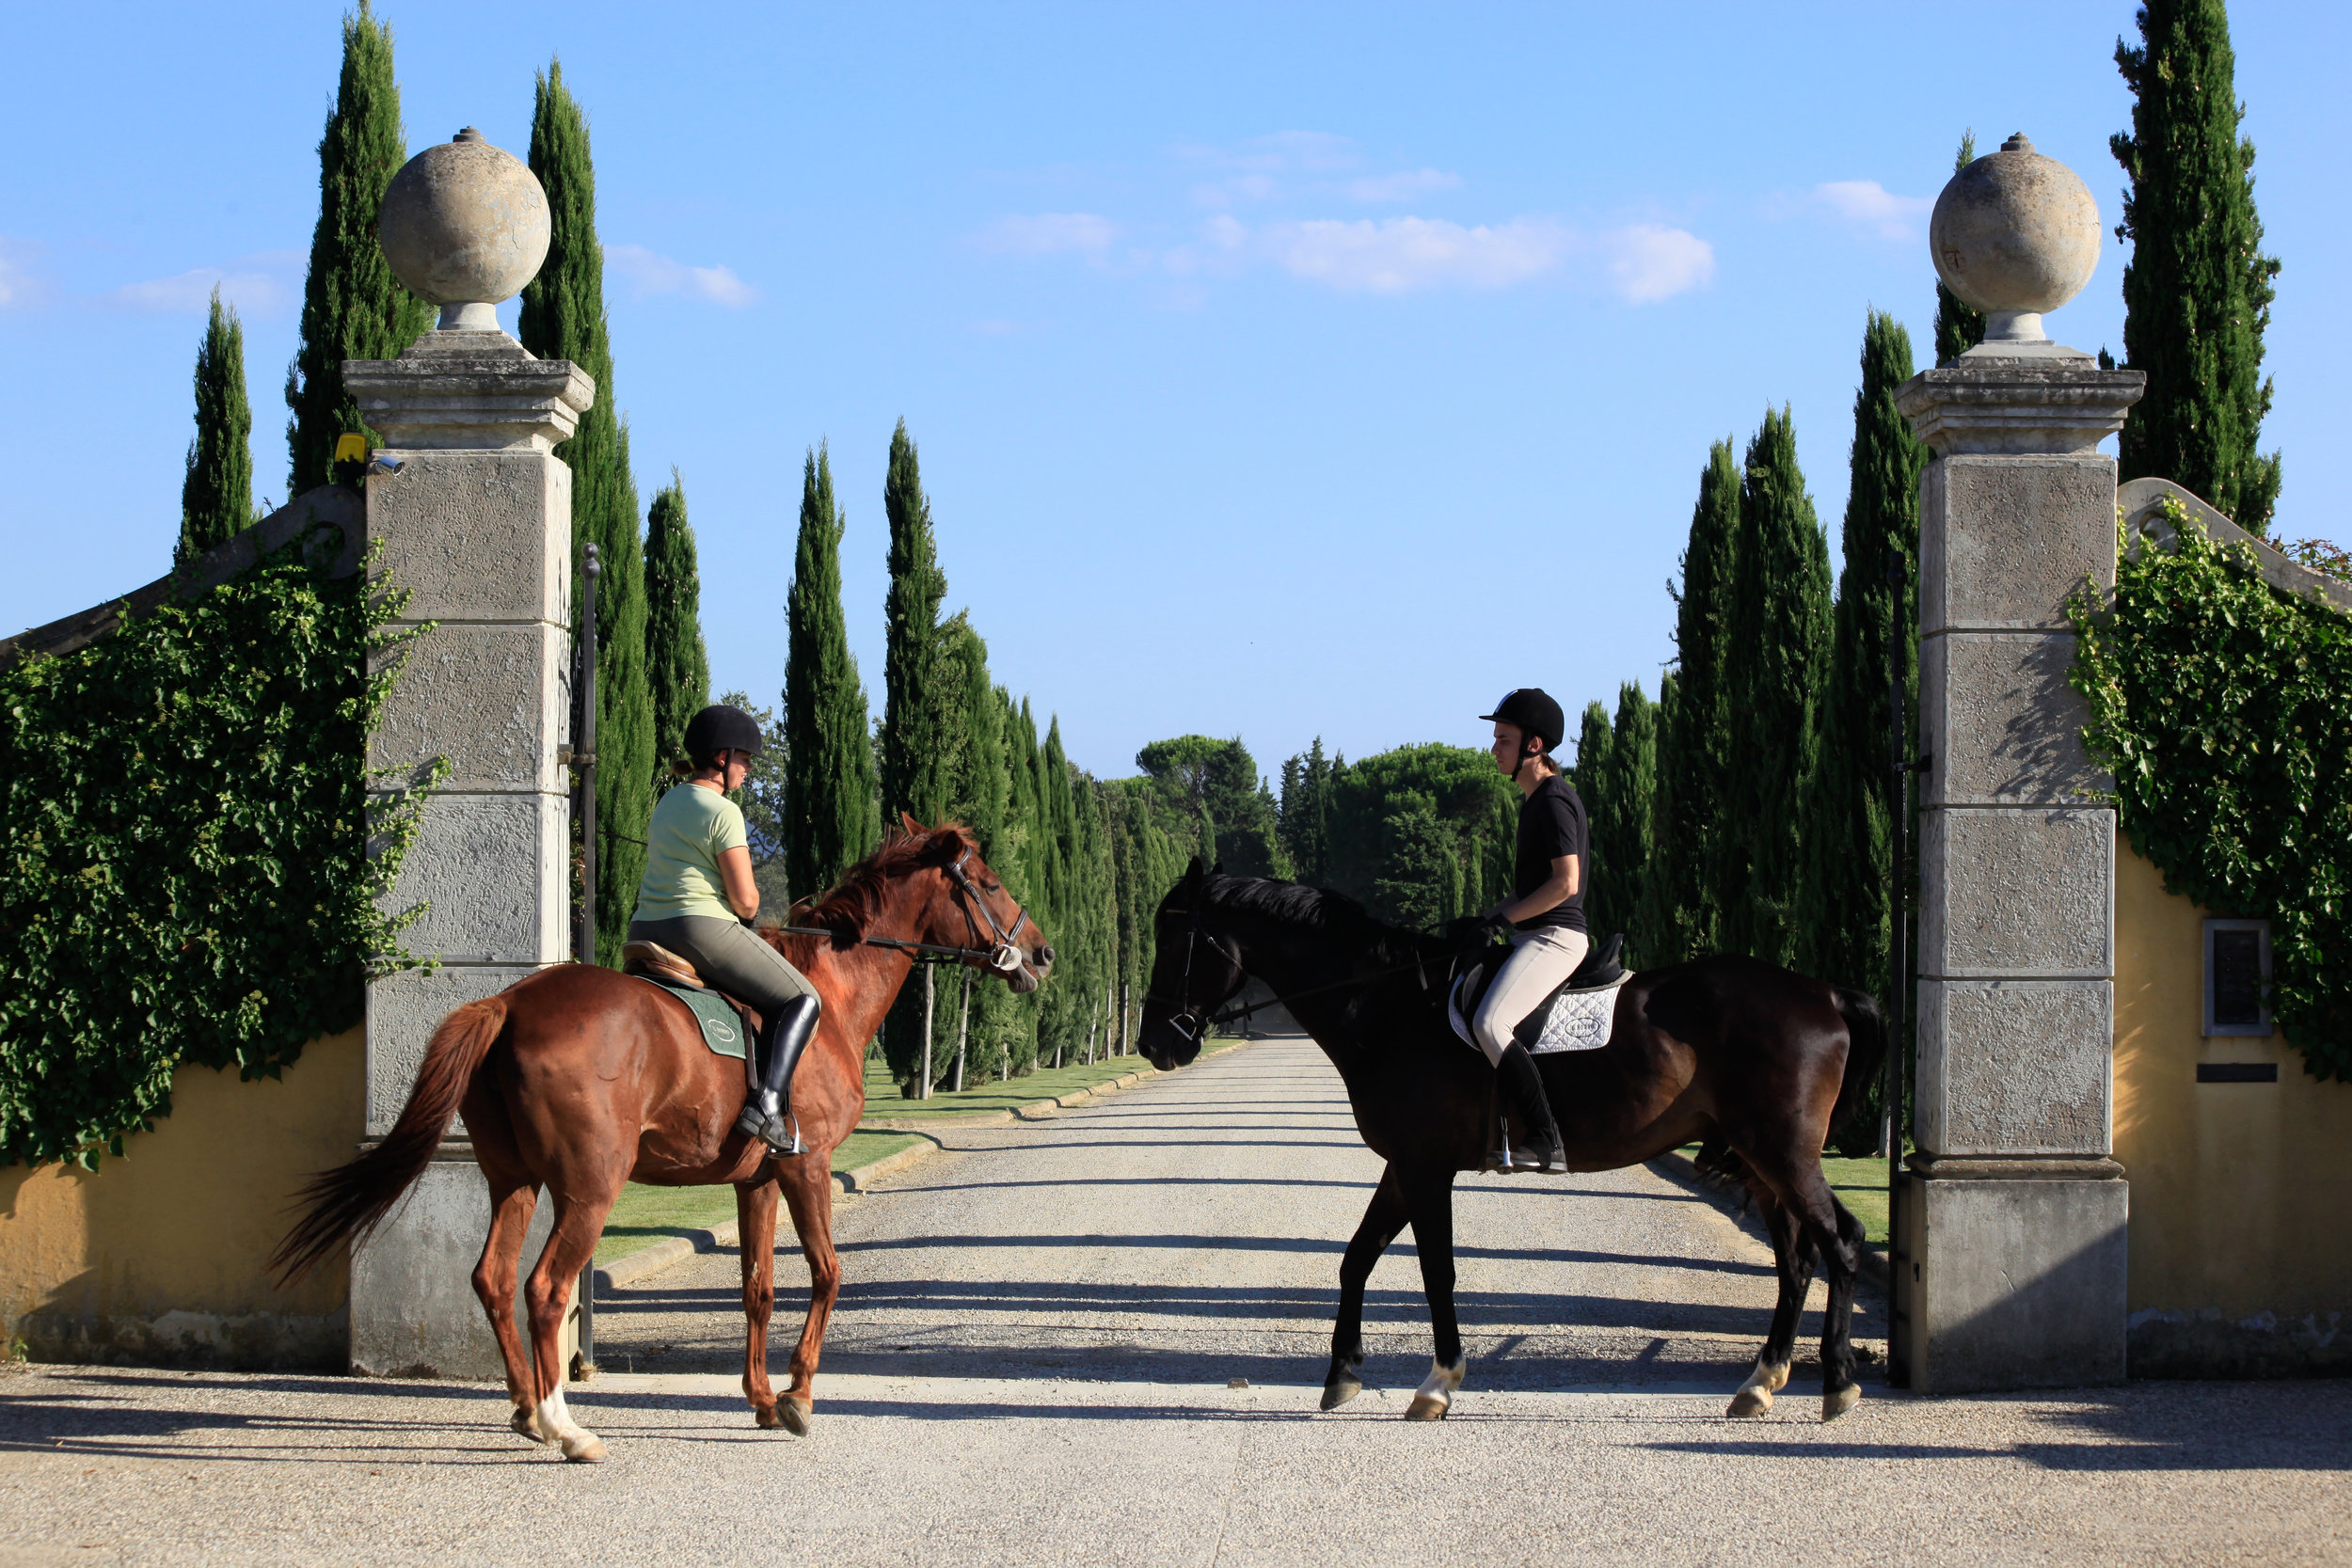 Activities range from wine tasting to horseback riding…to just vegging out.